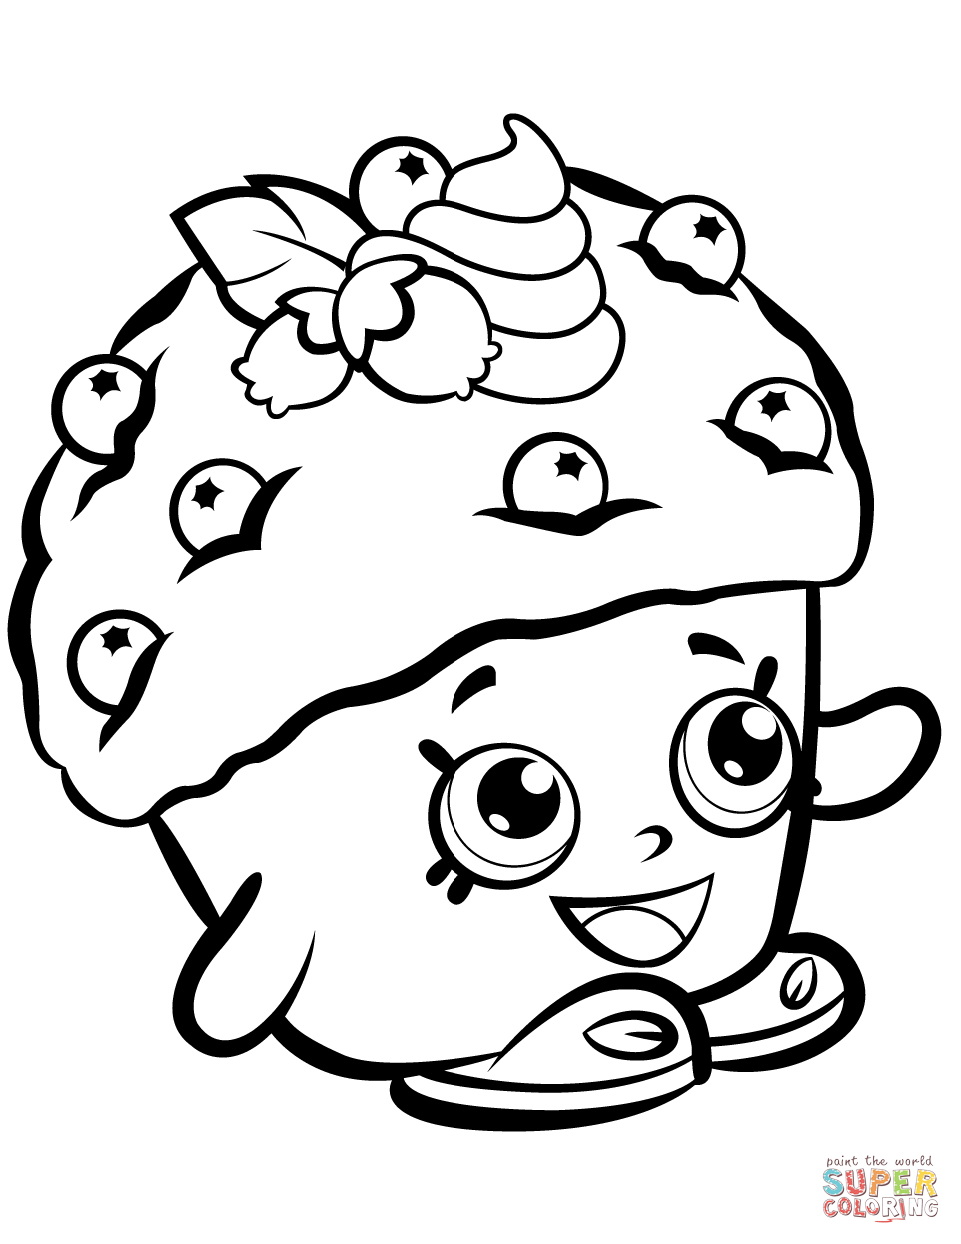 Mini Muffin Shopkin Coloring Page Free Printable